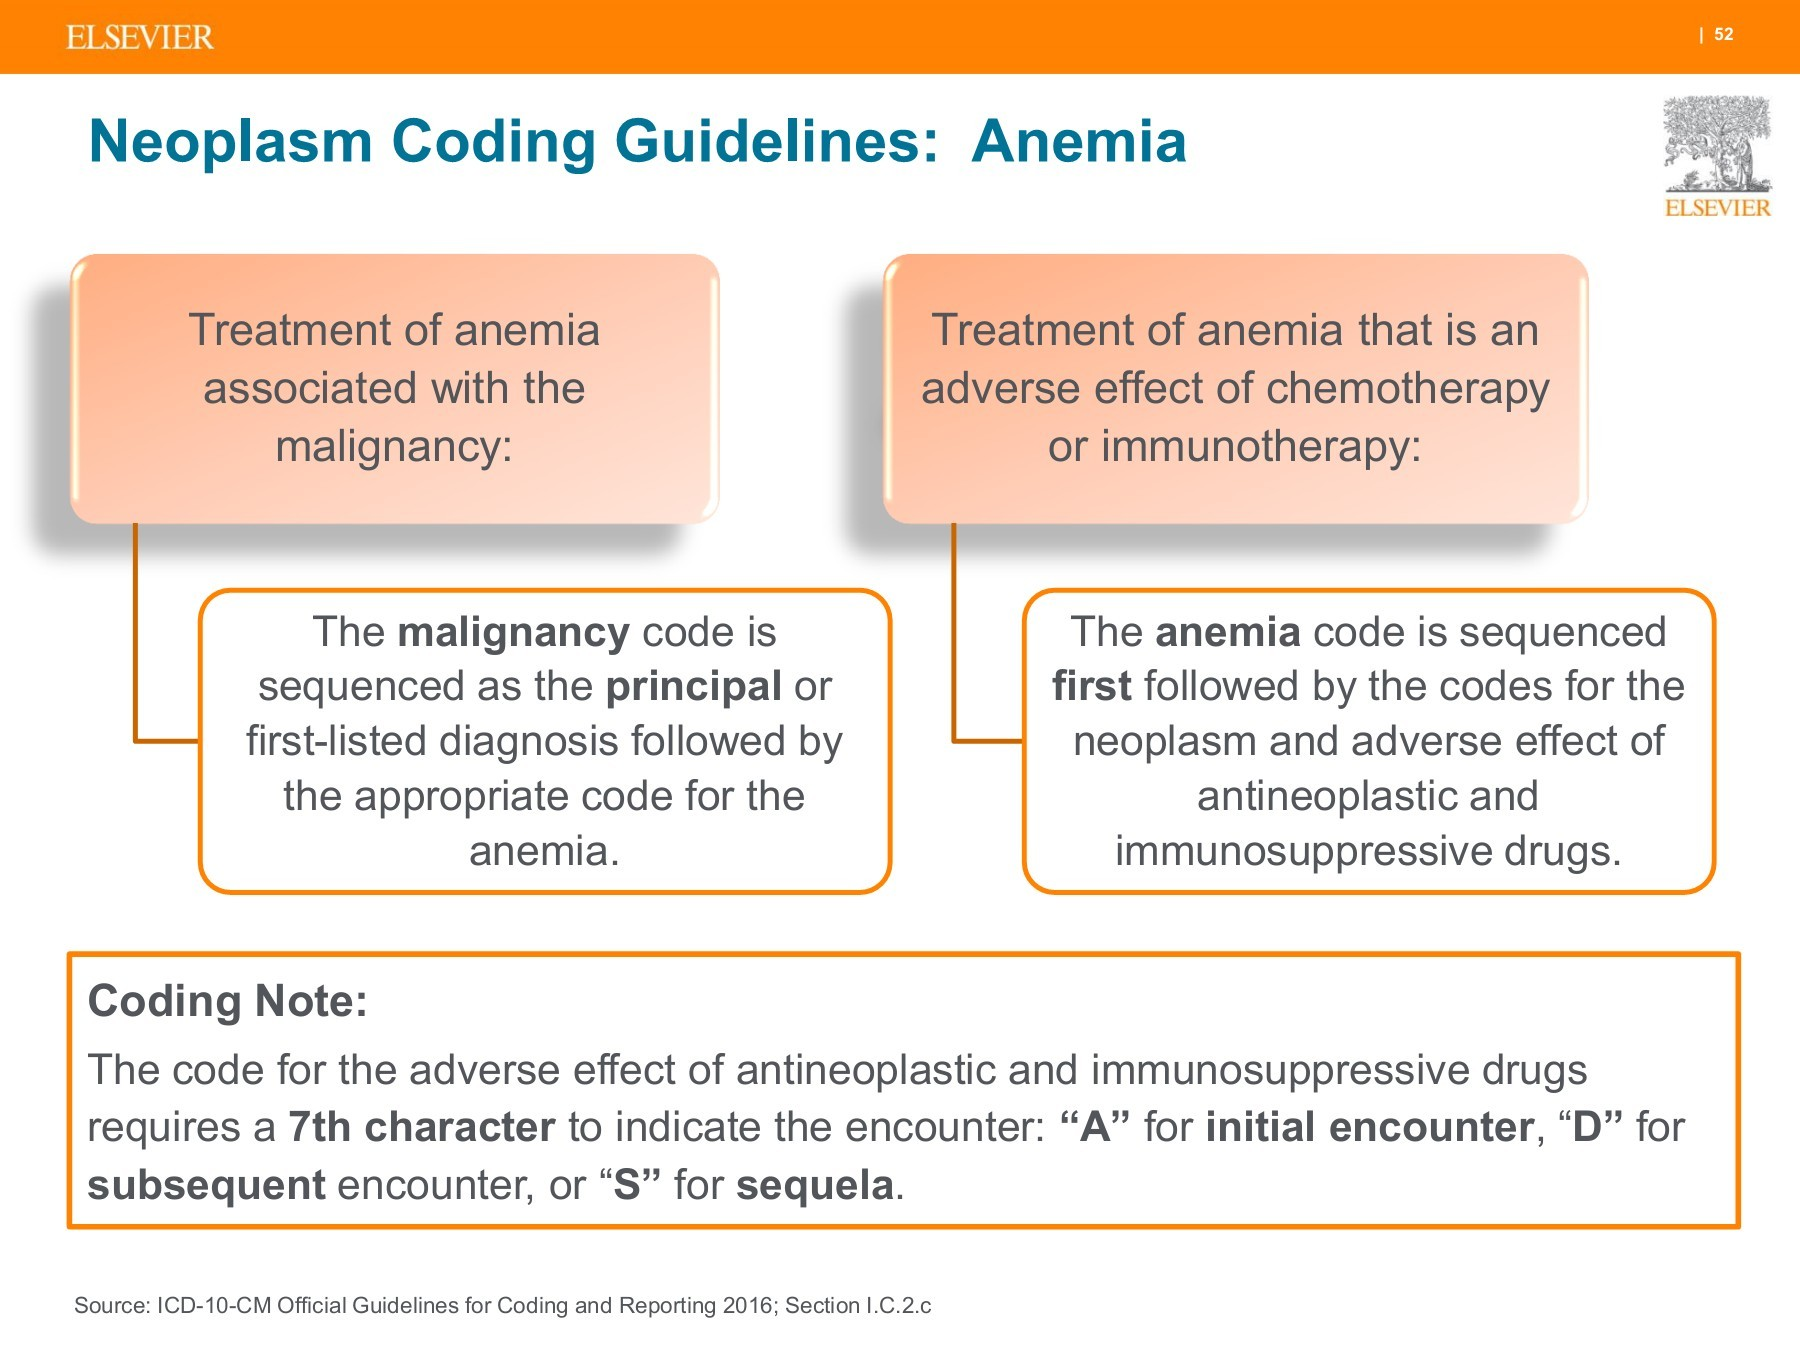 icd 10 code for anemia